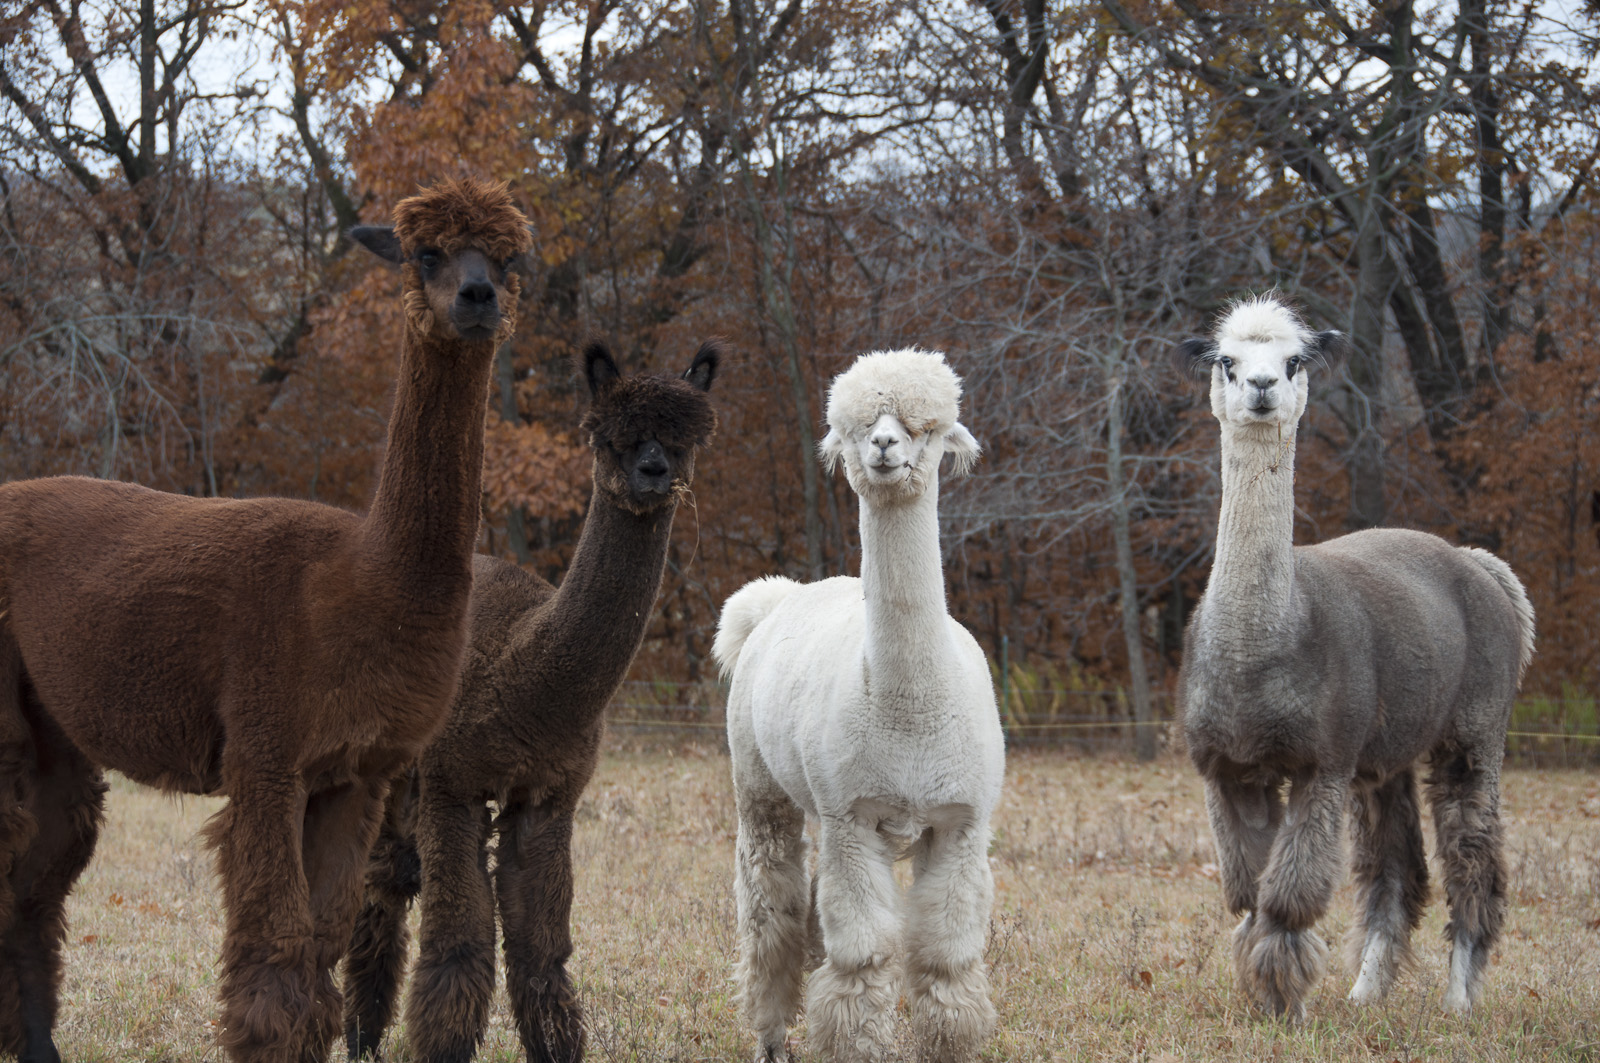 Alpacas-Screen_Resolution-©2011-Colby_Abazs-www.colorlightphotography.com-0707